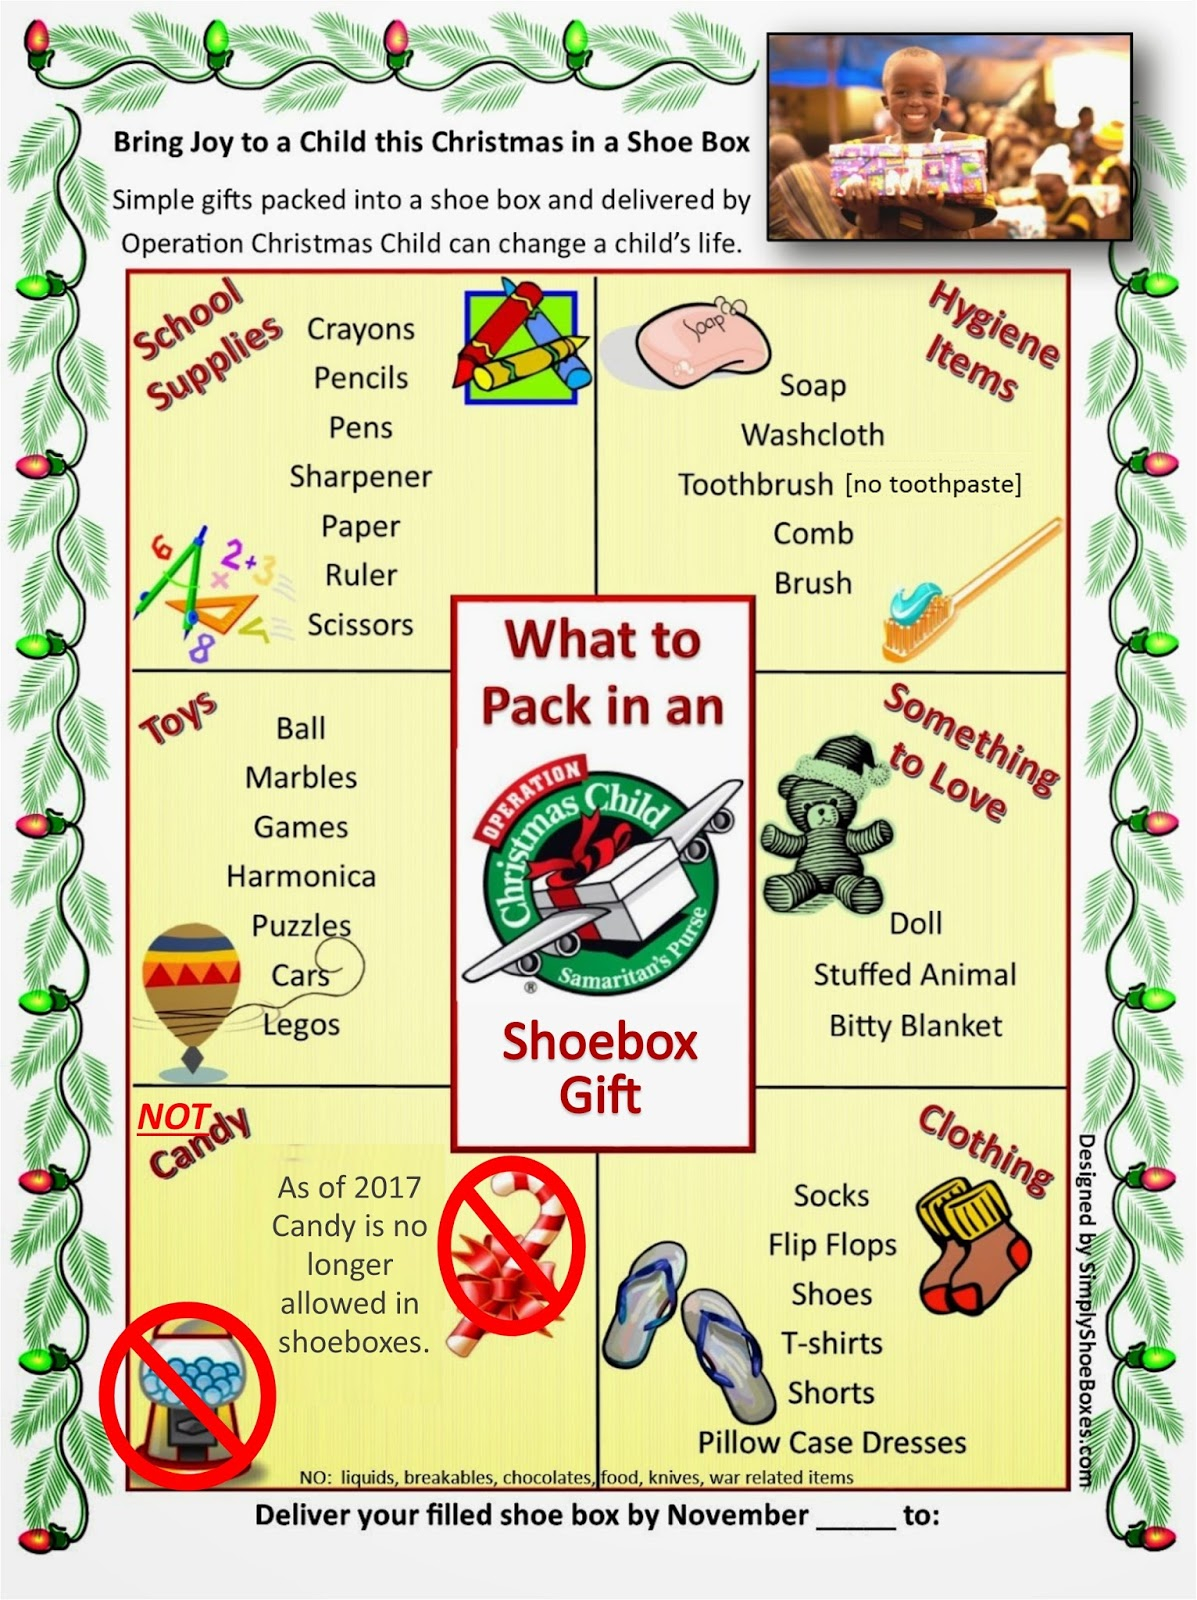 Operation Christmas Child Letter Template - Simply Shoeboxes October 2014